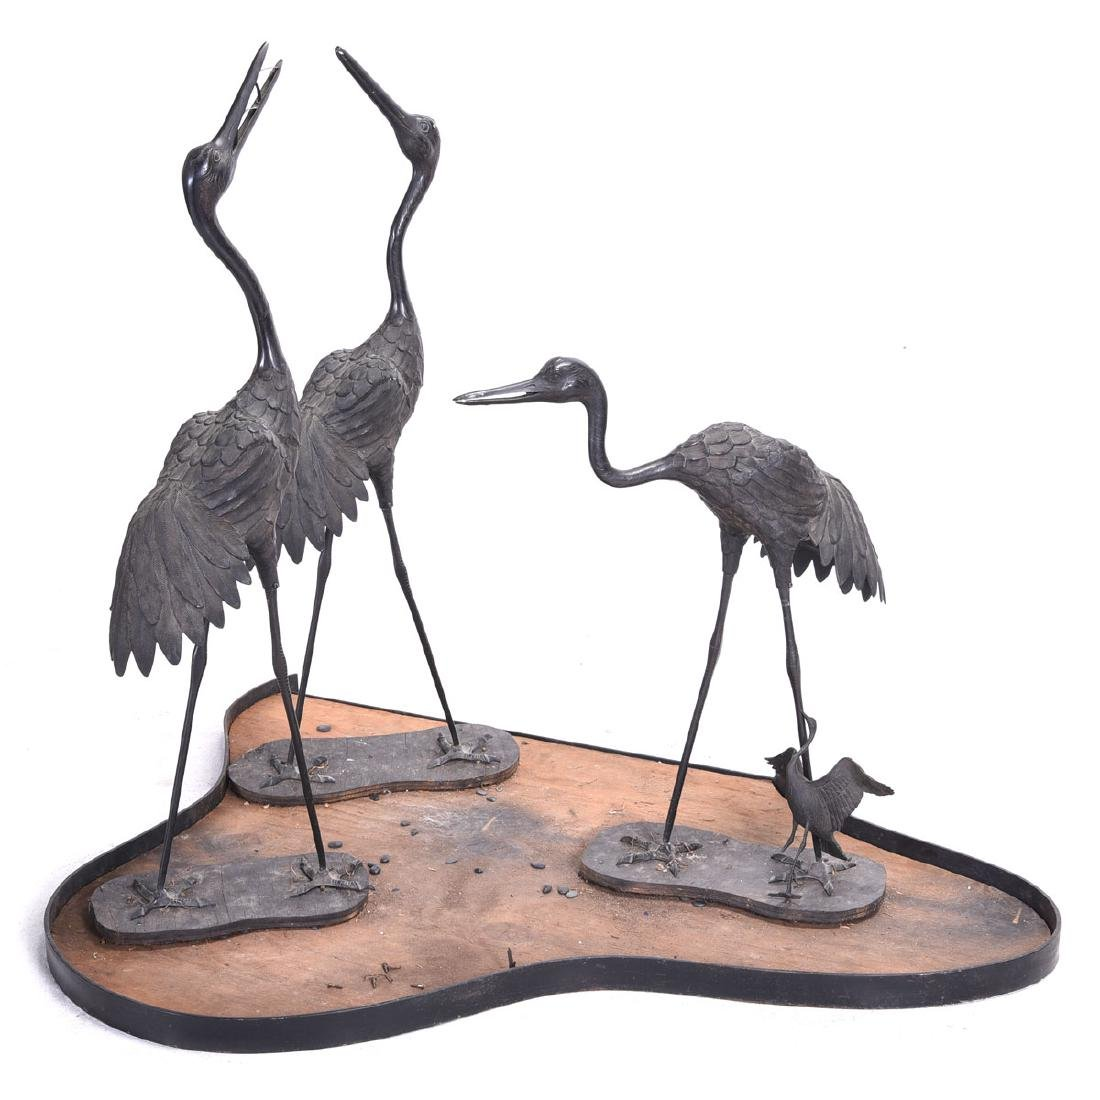 Group of Three Metal Cranes, on Wood and Metal Base